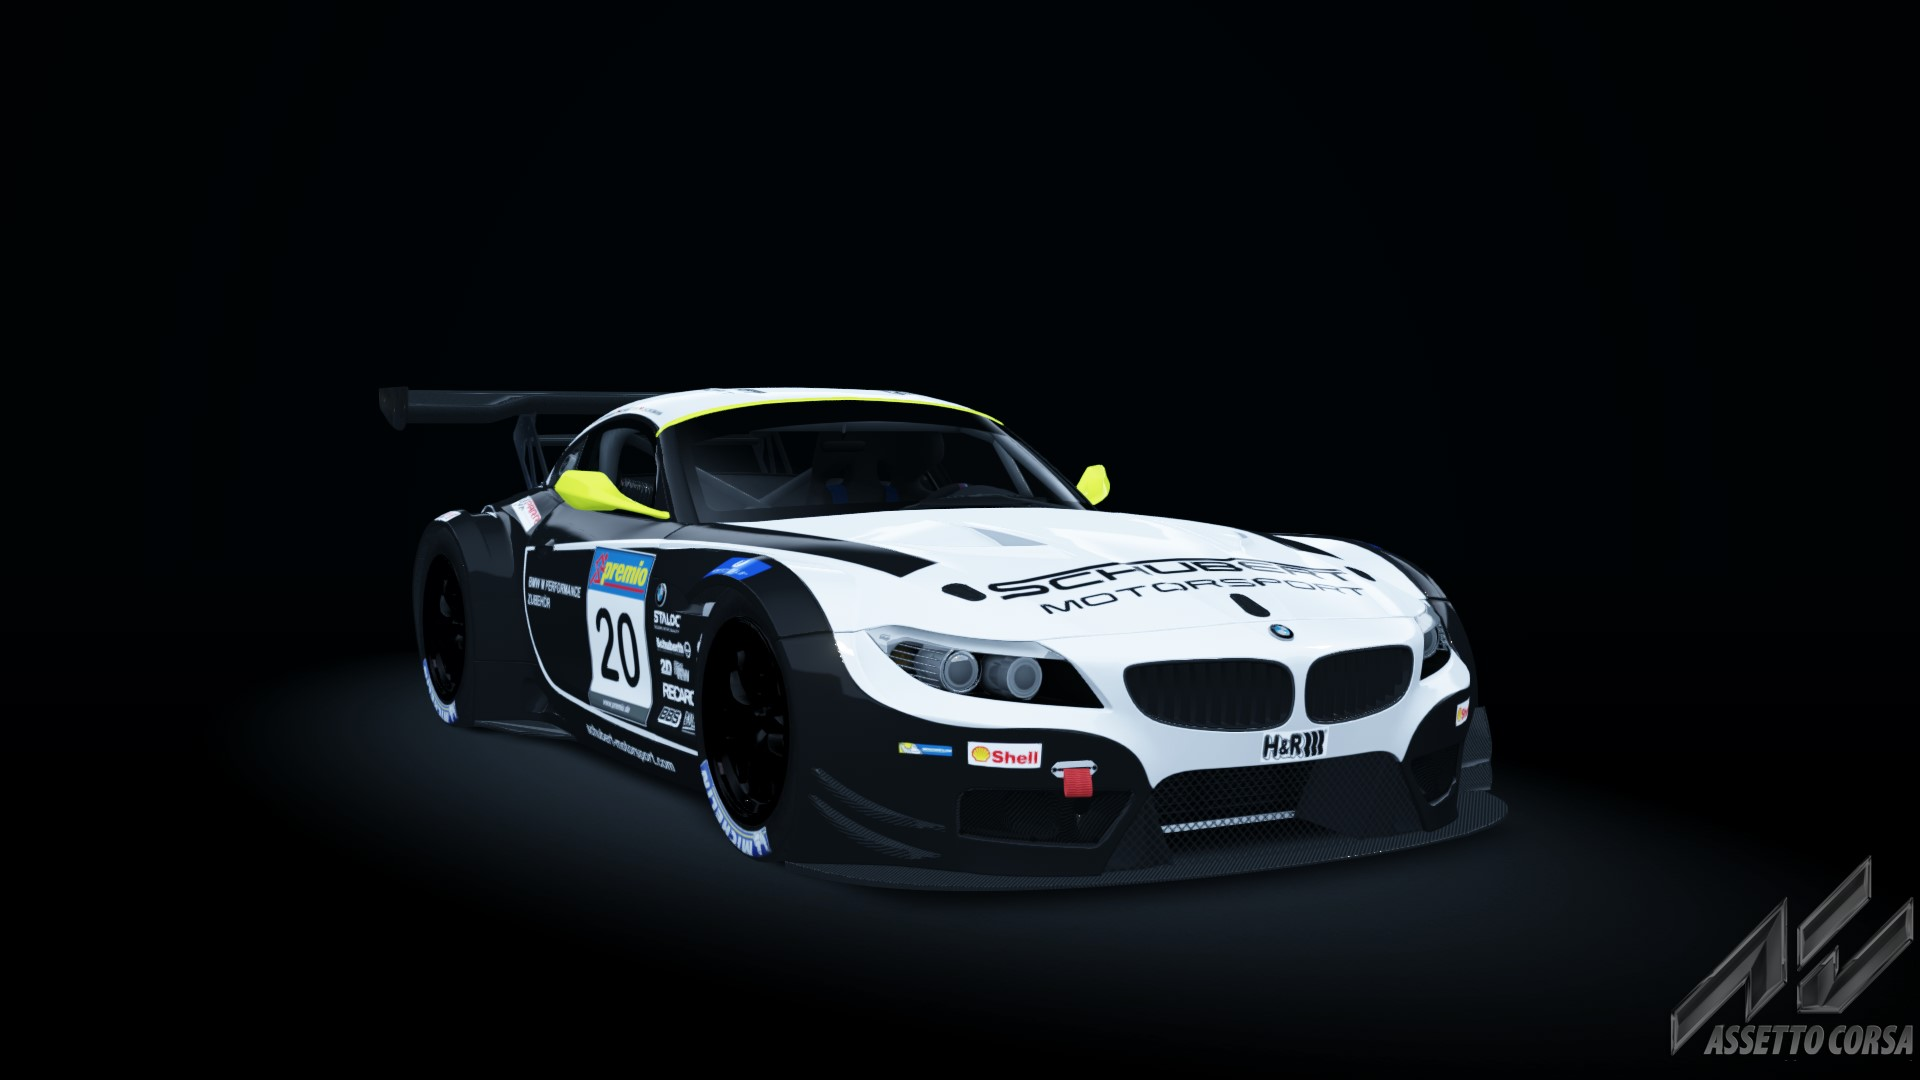 Showroom_bmw_z4_gt3_30-2-2015-19-26-38.jpg